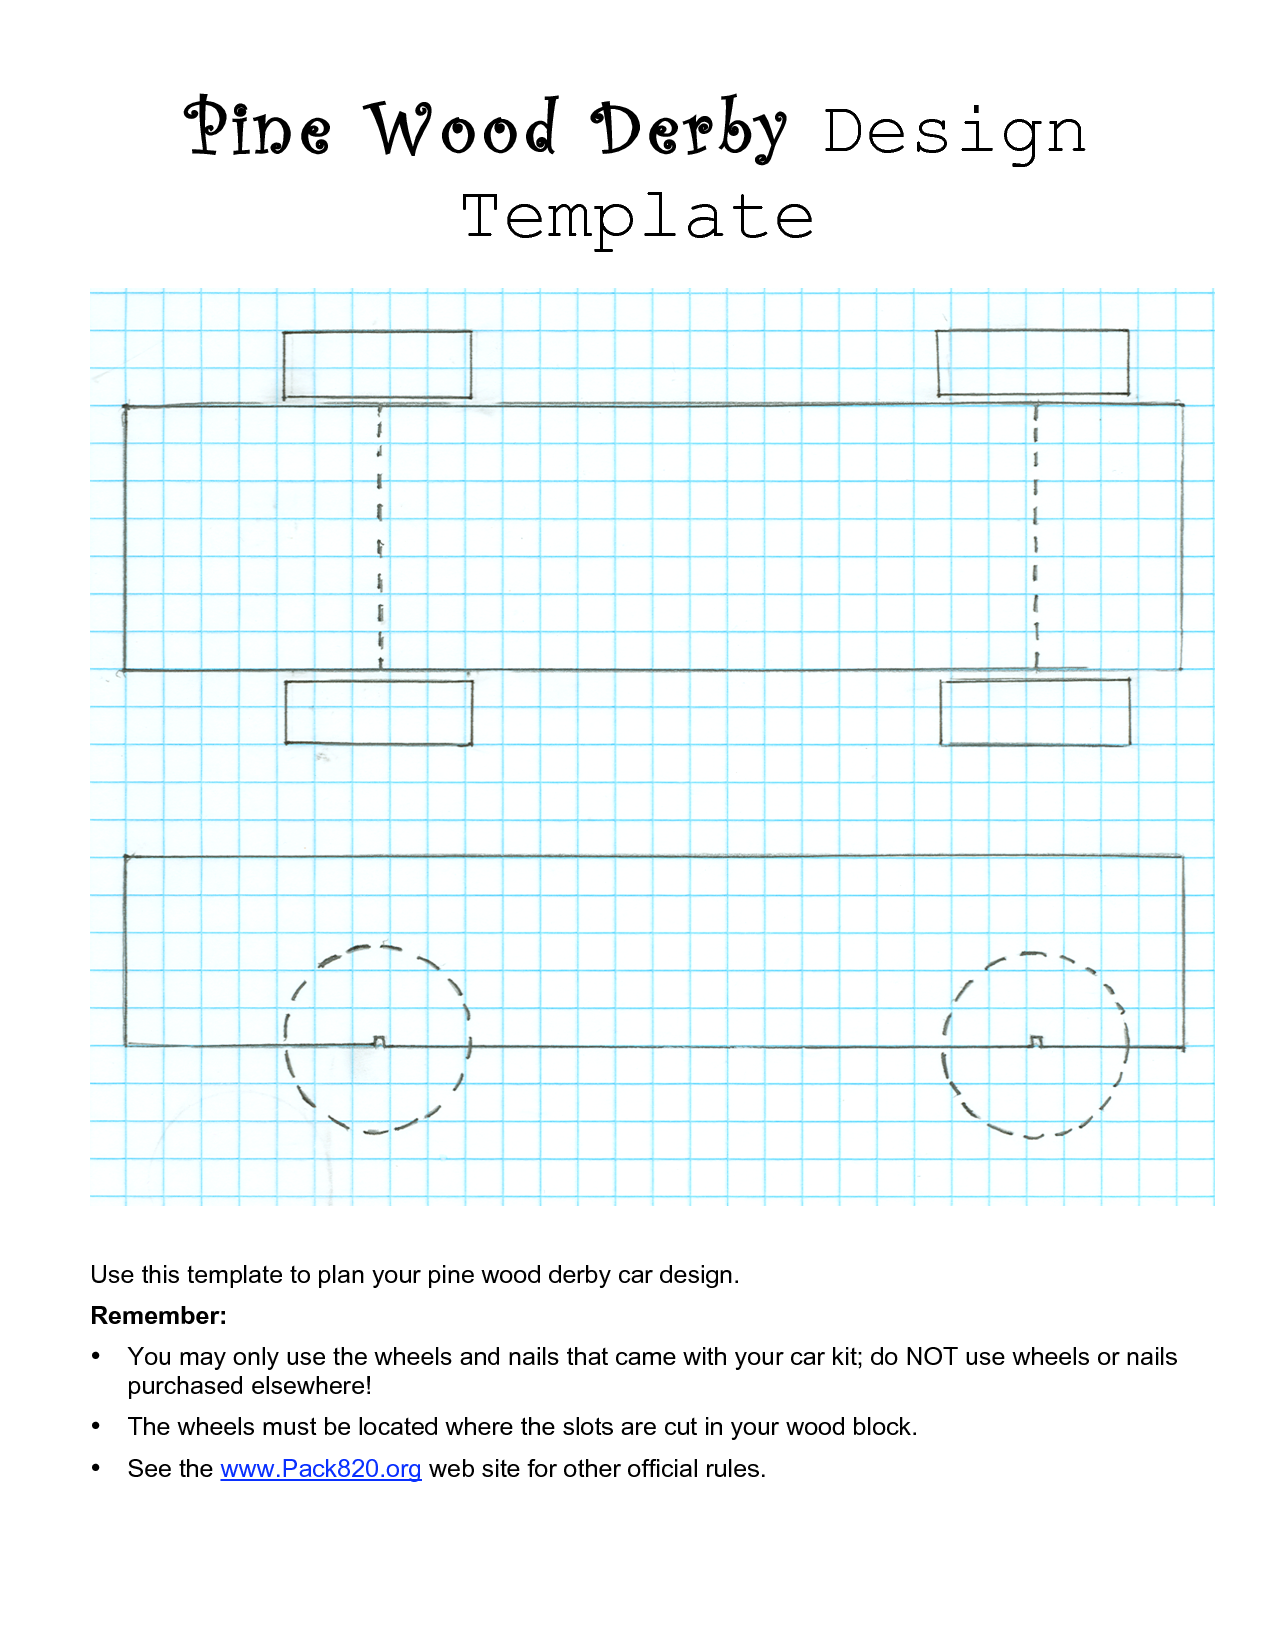 Image Result For Pinewood Derby Car Templates Printable  Pinewood